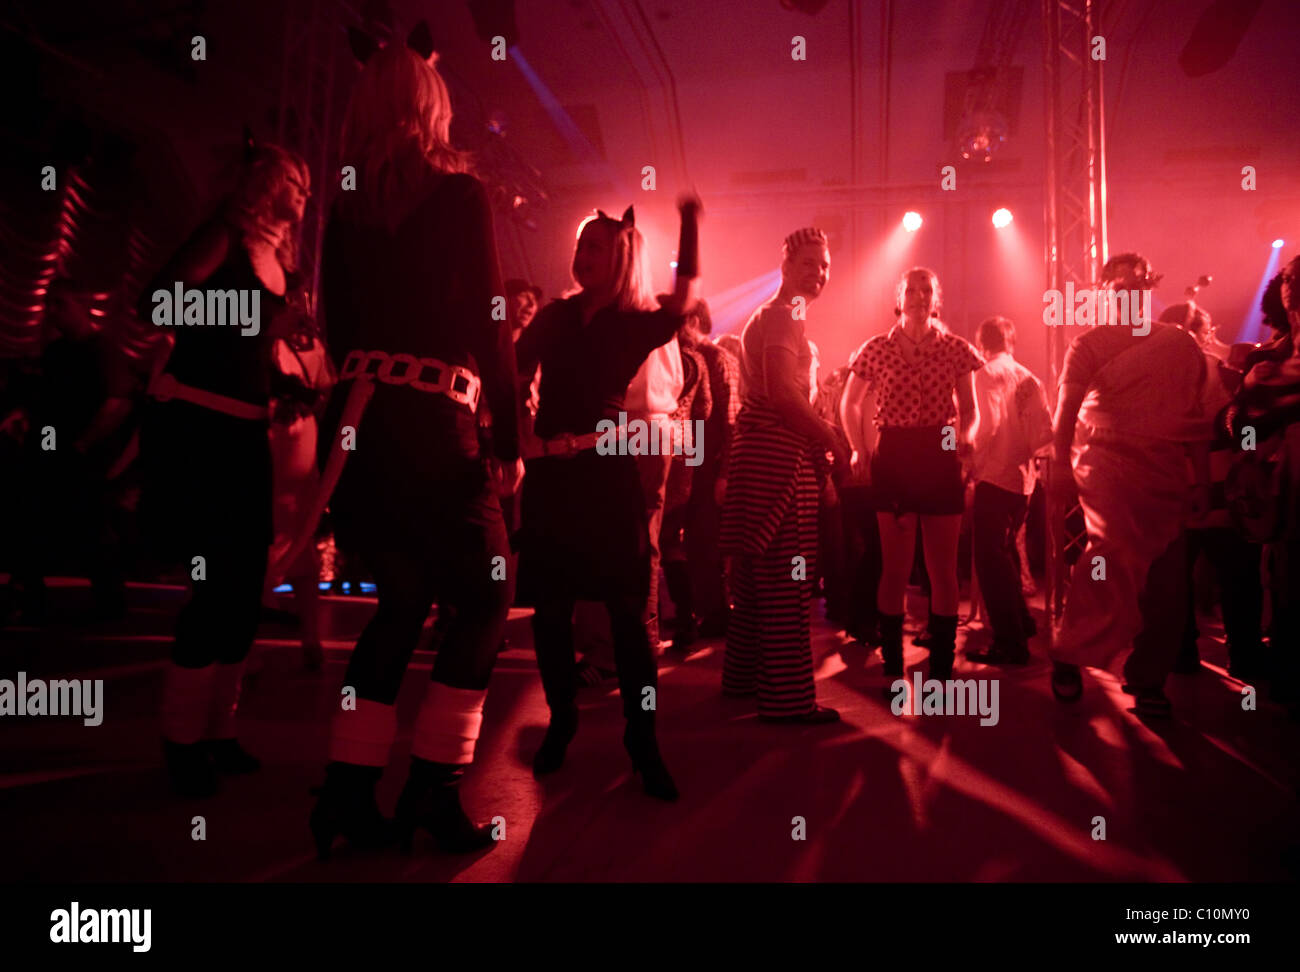 People dancing enjoying nightlife during the Crazy Days of the Carnival in Cologne (Germany) Stock Photo